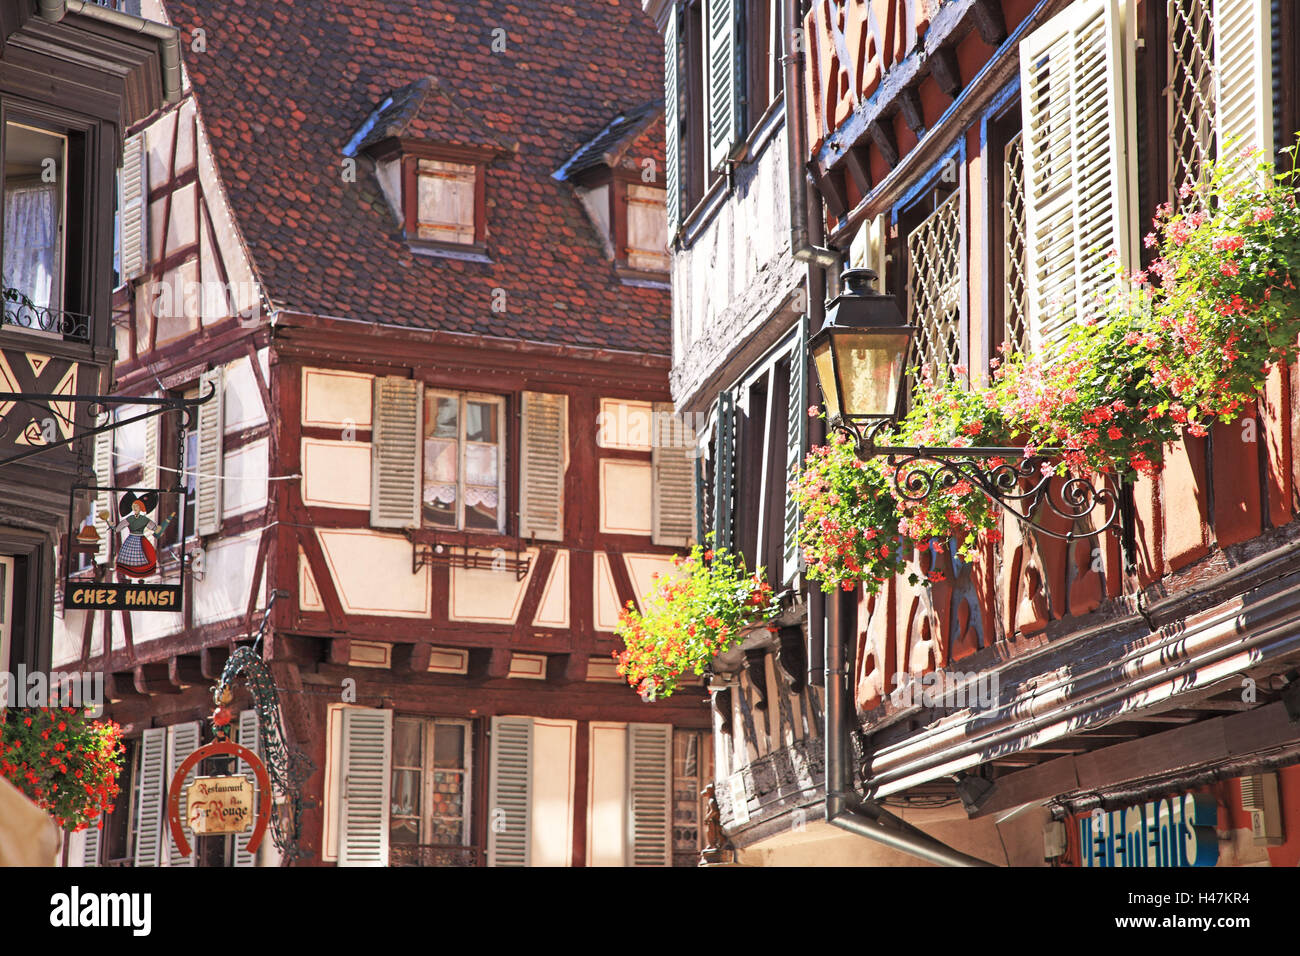 frankreich region elsass colmar old town h user frankreich elsass niemand geb ude. Black Bedroom Furniture Sets. Home Design Ideas